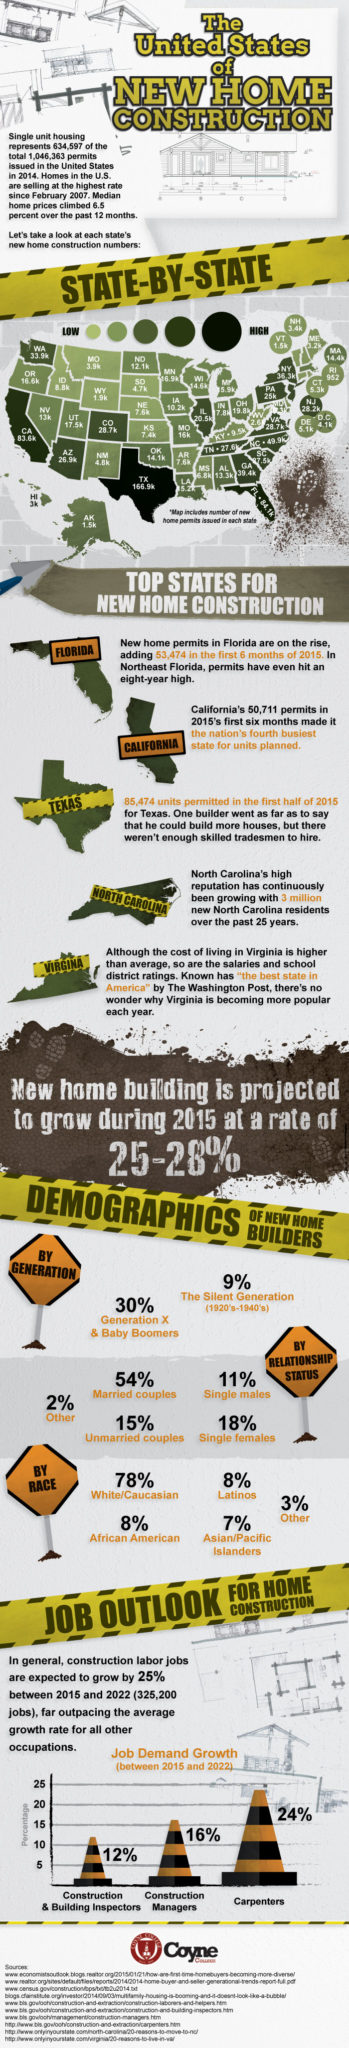 New home construction infographic